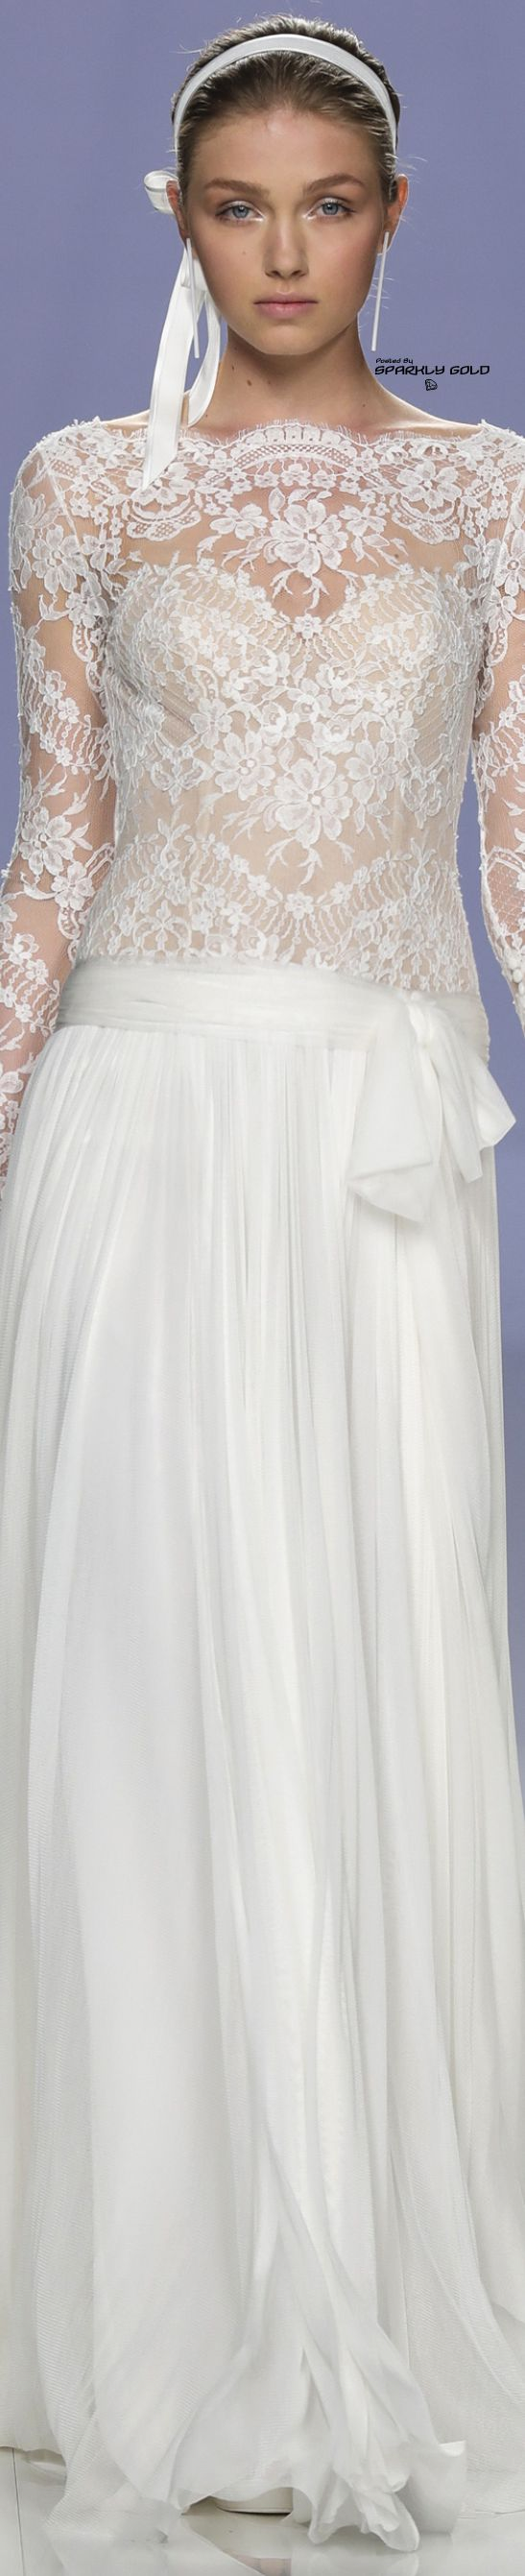 Rosa clará bridal spring wedding bridal dresses